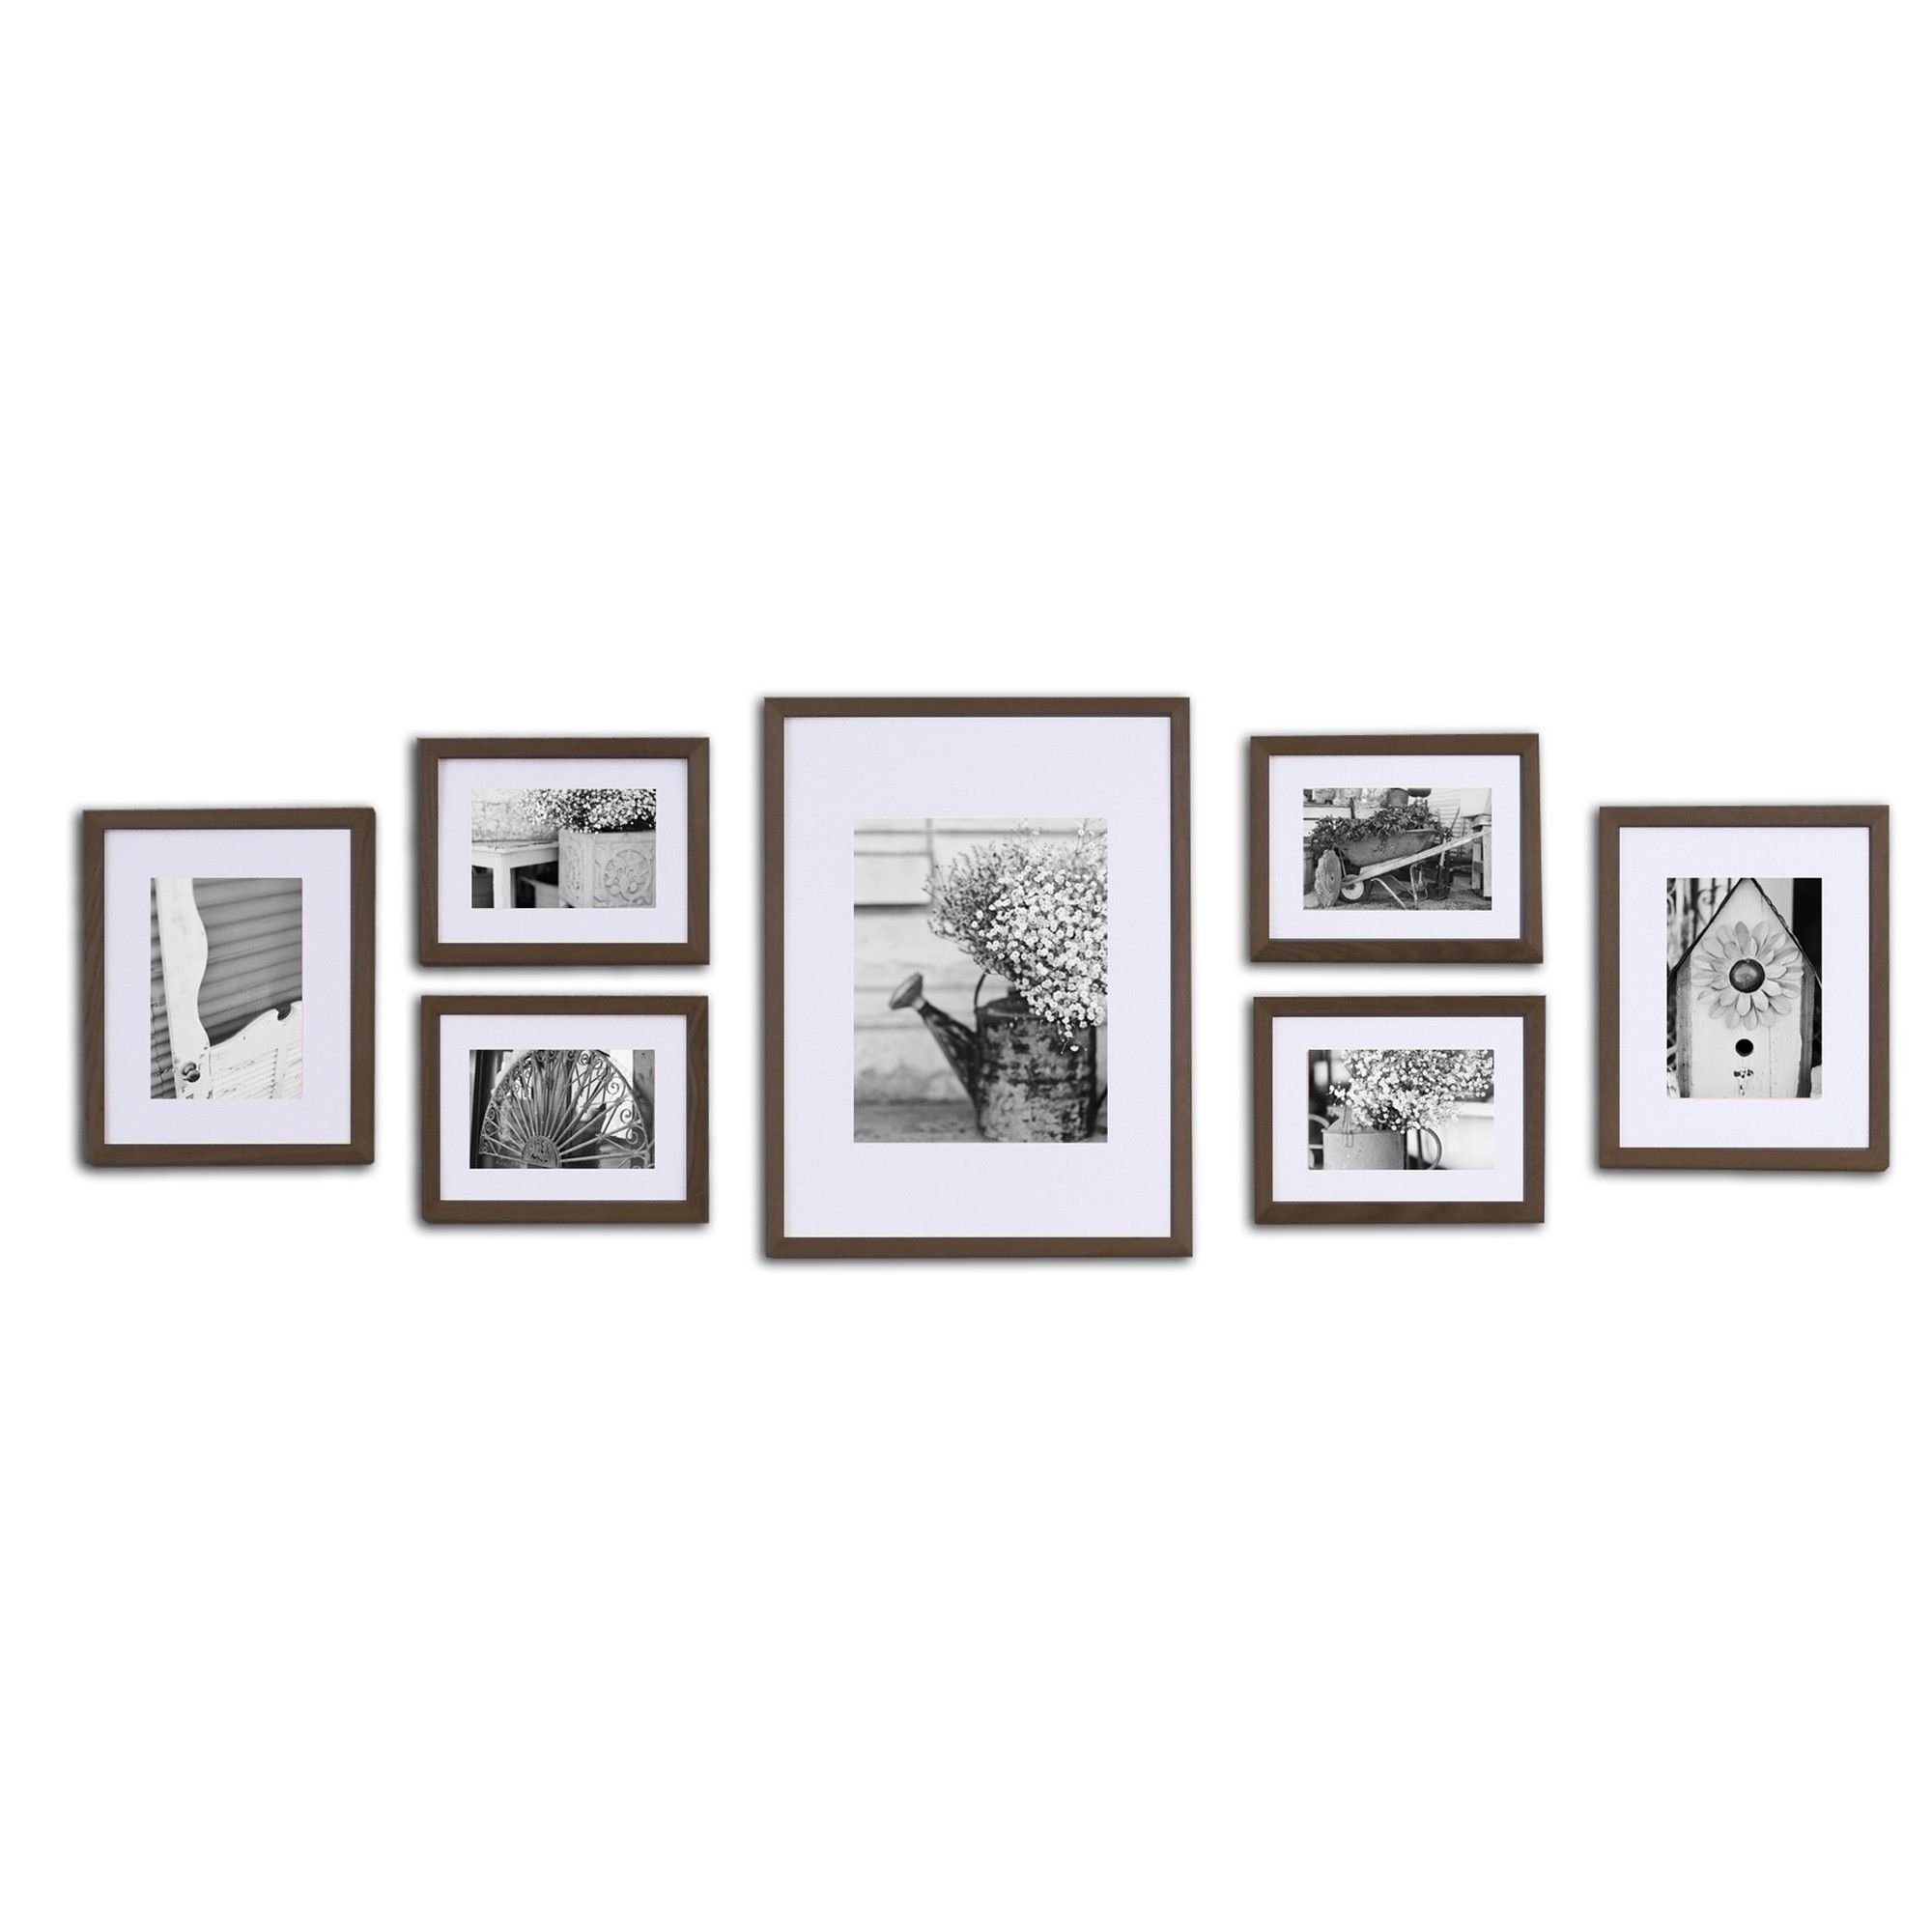 Features solid wood 7 piece wall frame set with usable artwork pinnacle black solid wood wall frame kit black solid wood wall frame set with usable artwork includes frames matted to 2 jeuxipadfo Choice Image